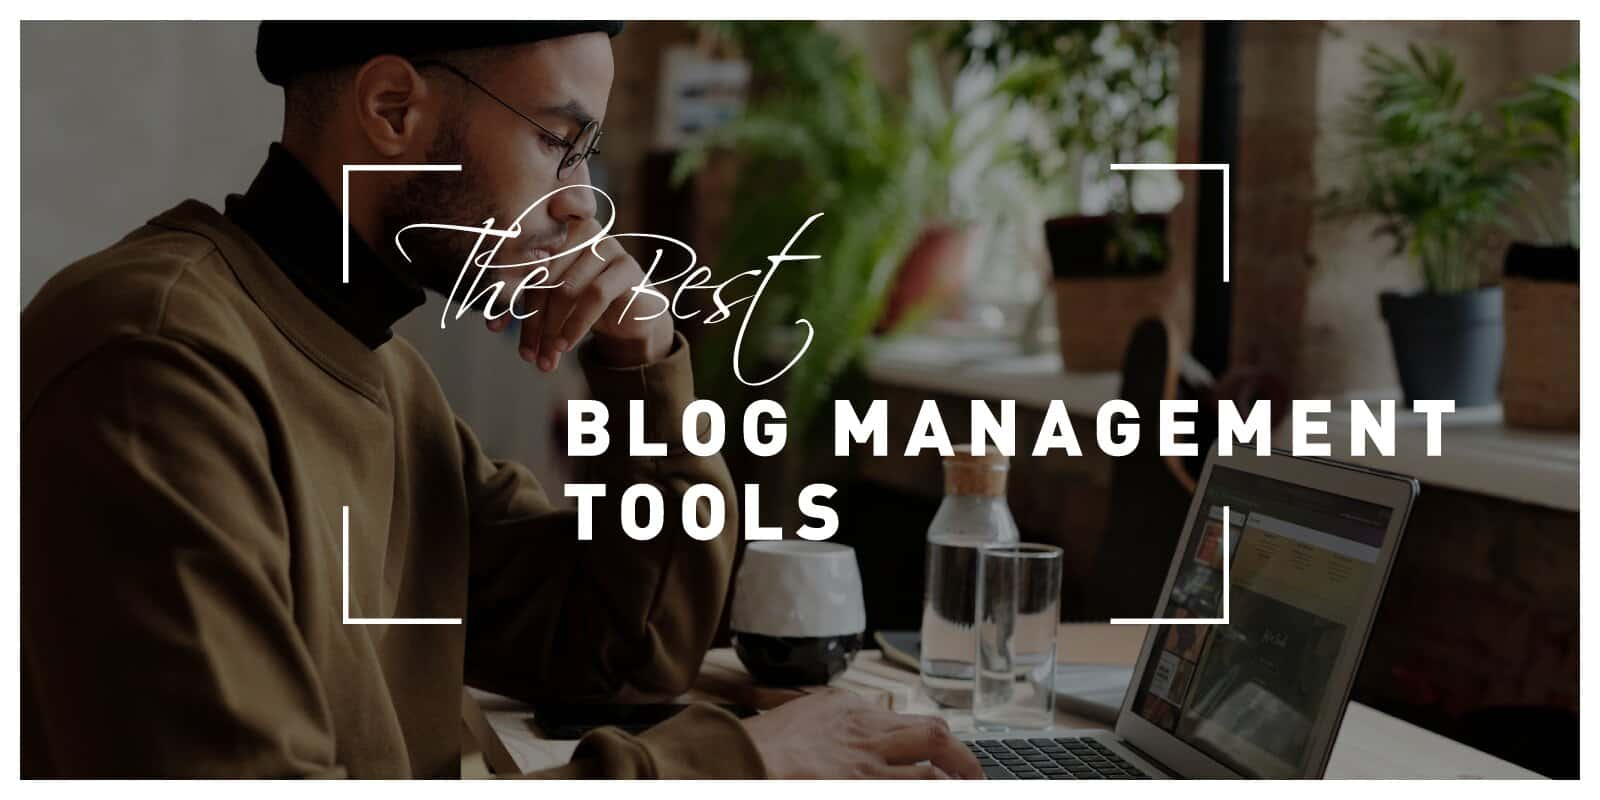 The Best Blog Management Tools for Those That Want to Prosper in Their Niche